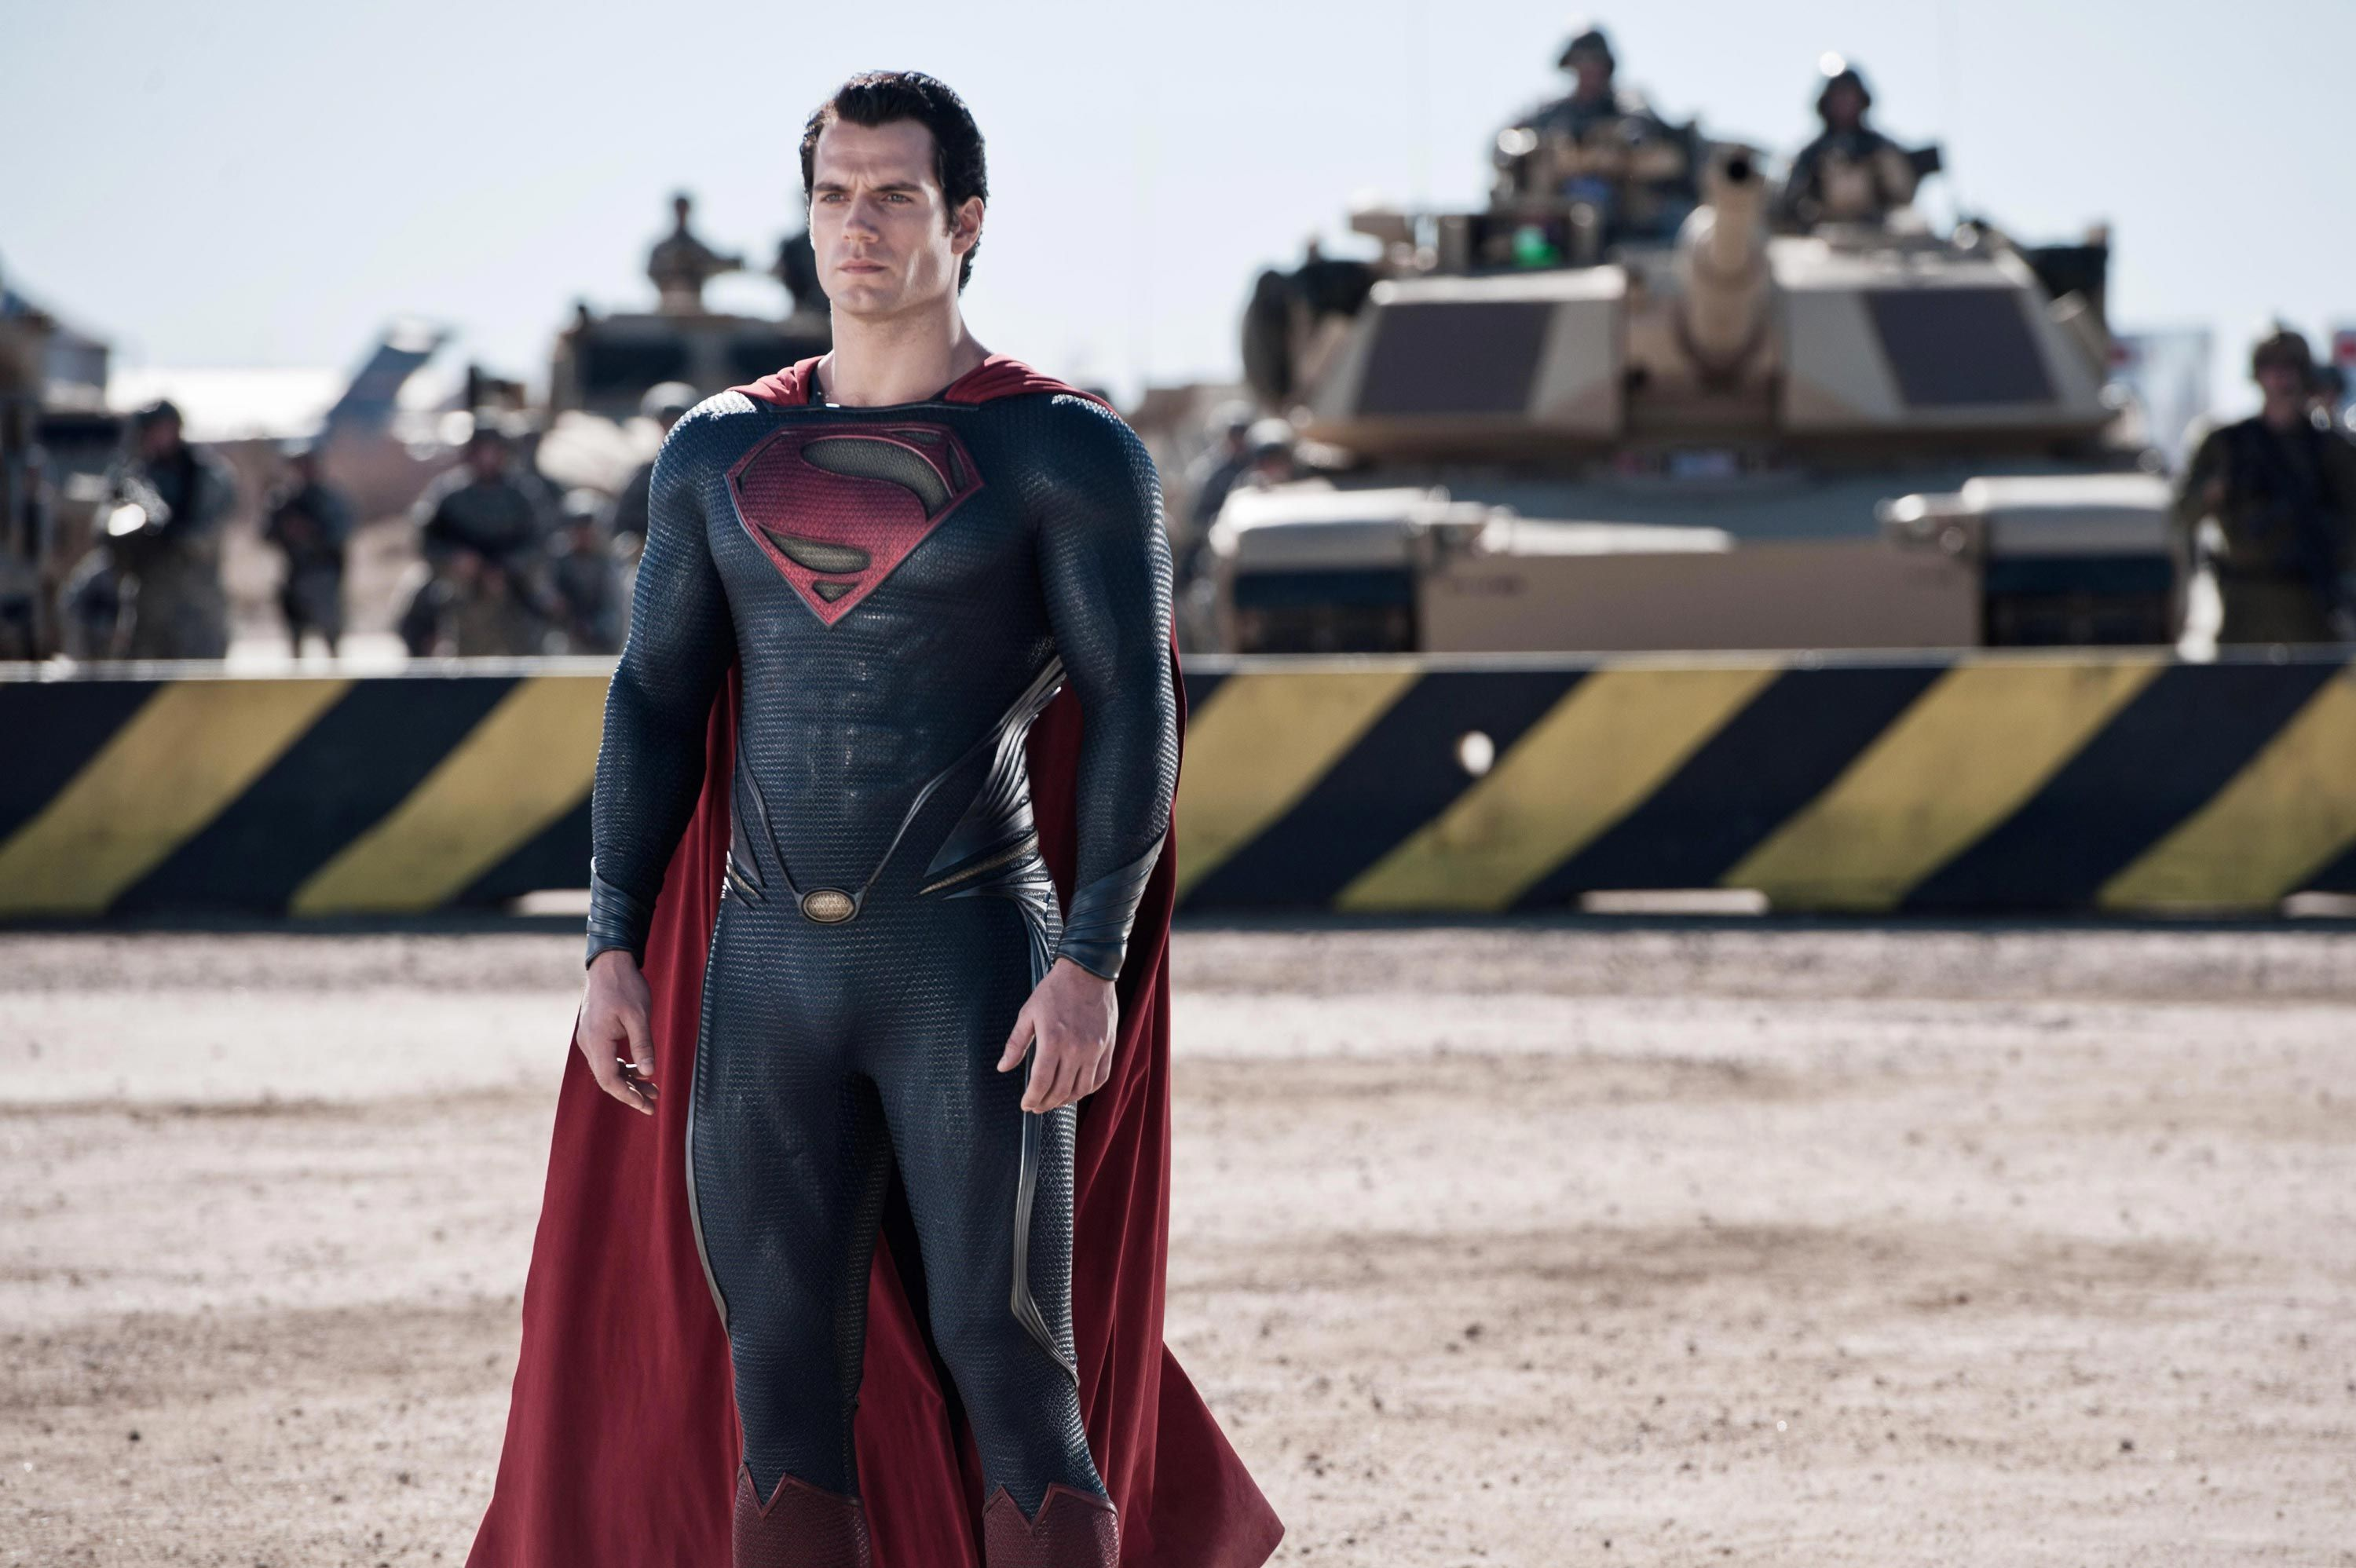 Dwayne Johnson's Black Adam and Henry Cavill's Superman could cross over, producer teases